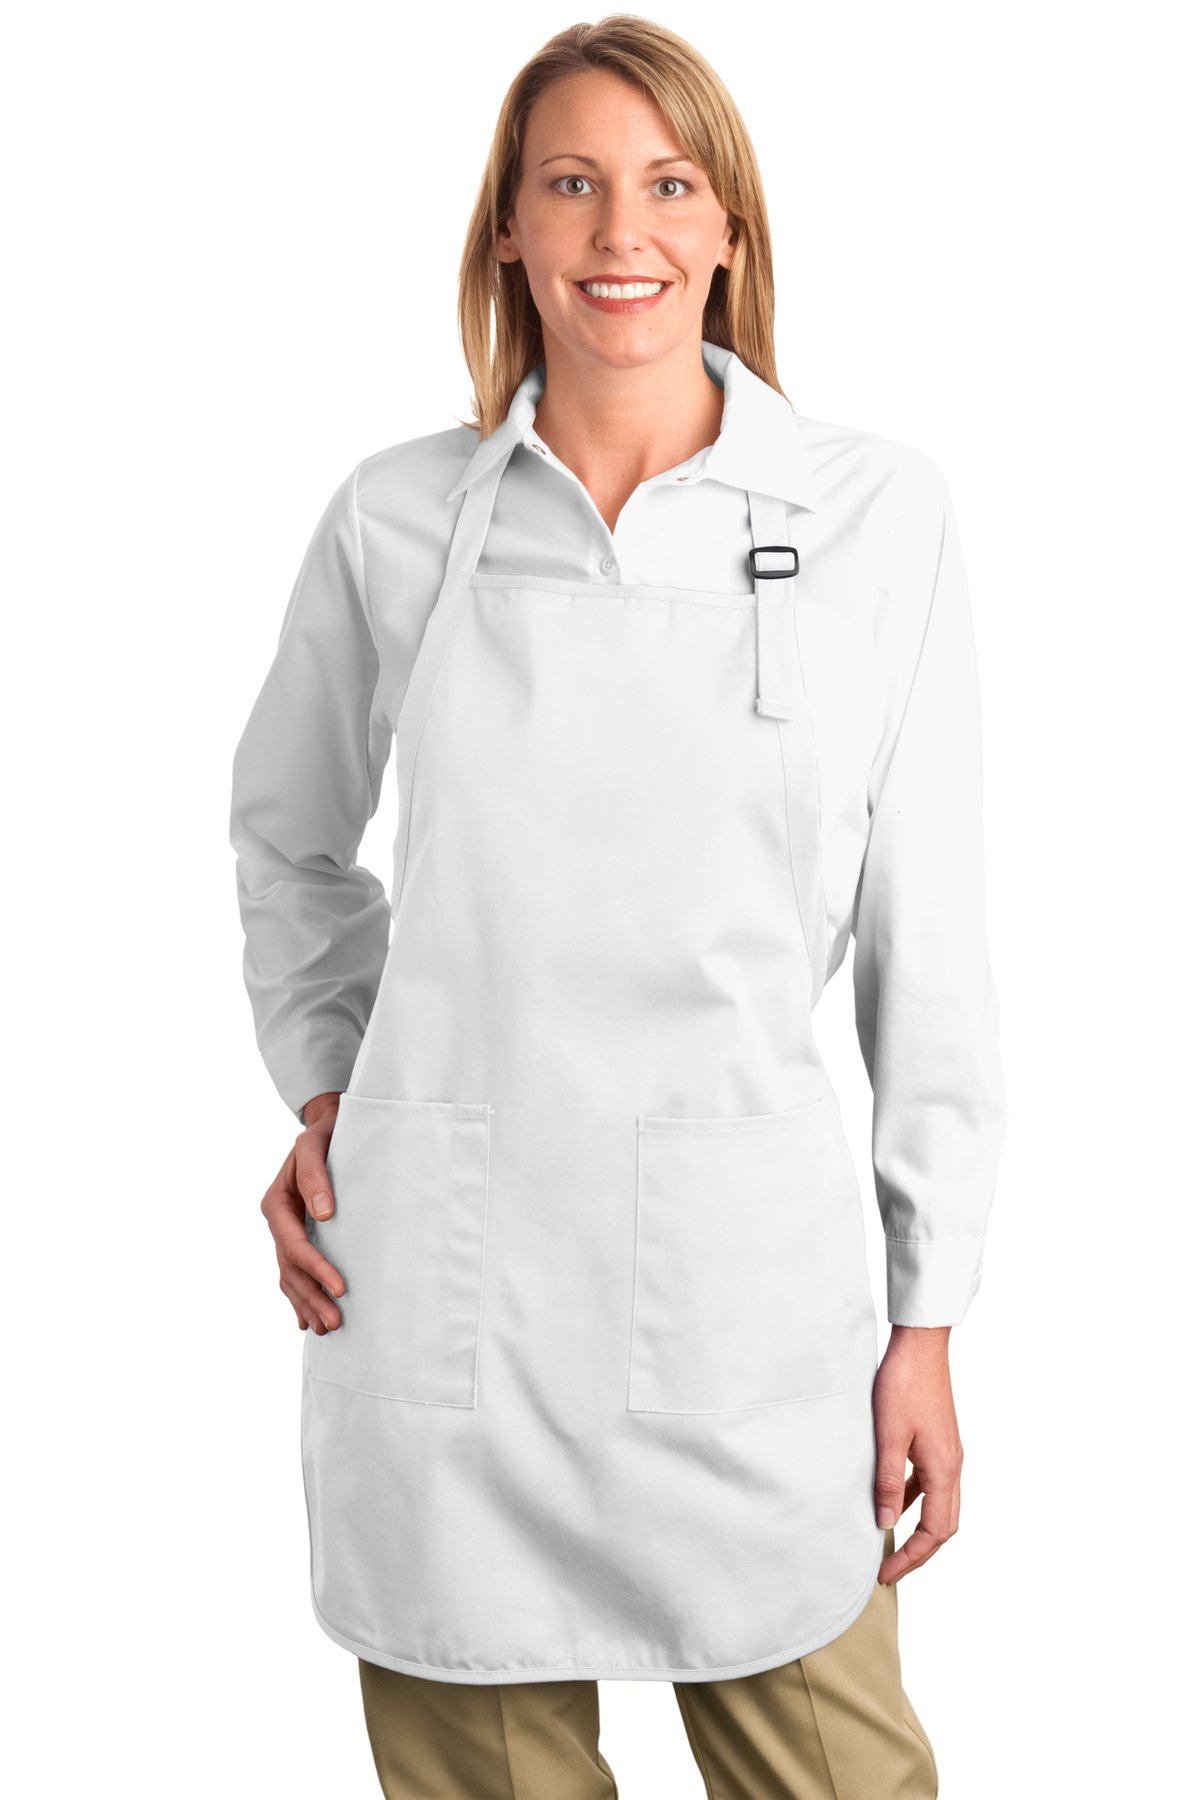 Port Authority ®  Full-Length Apron with Pockets.  A500 - White